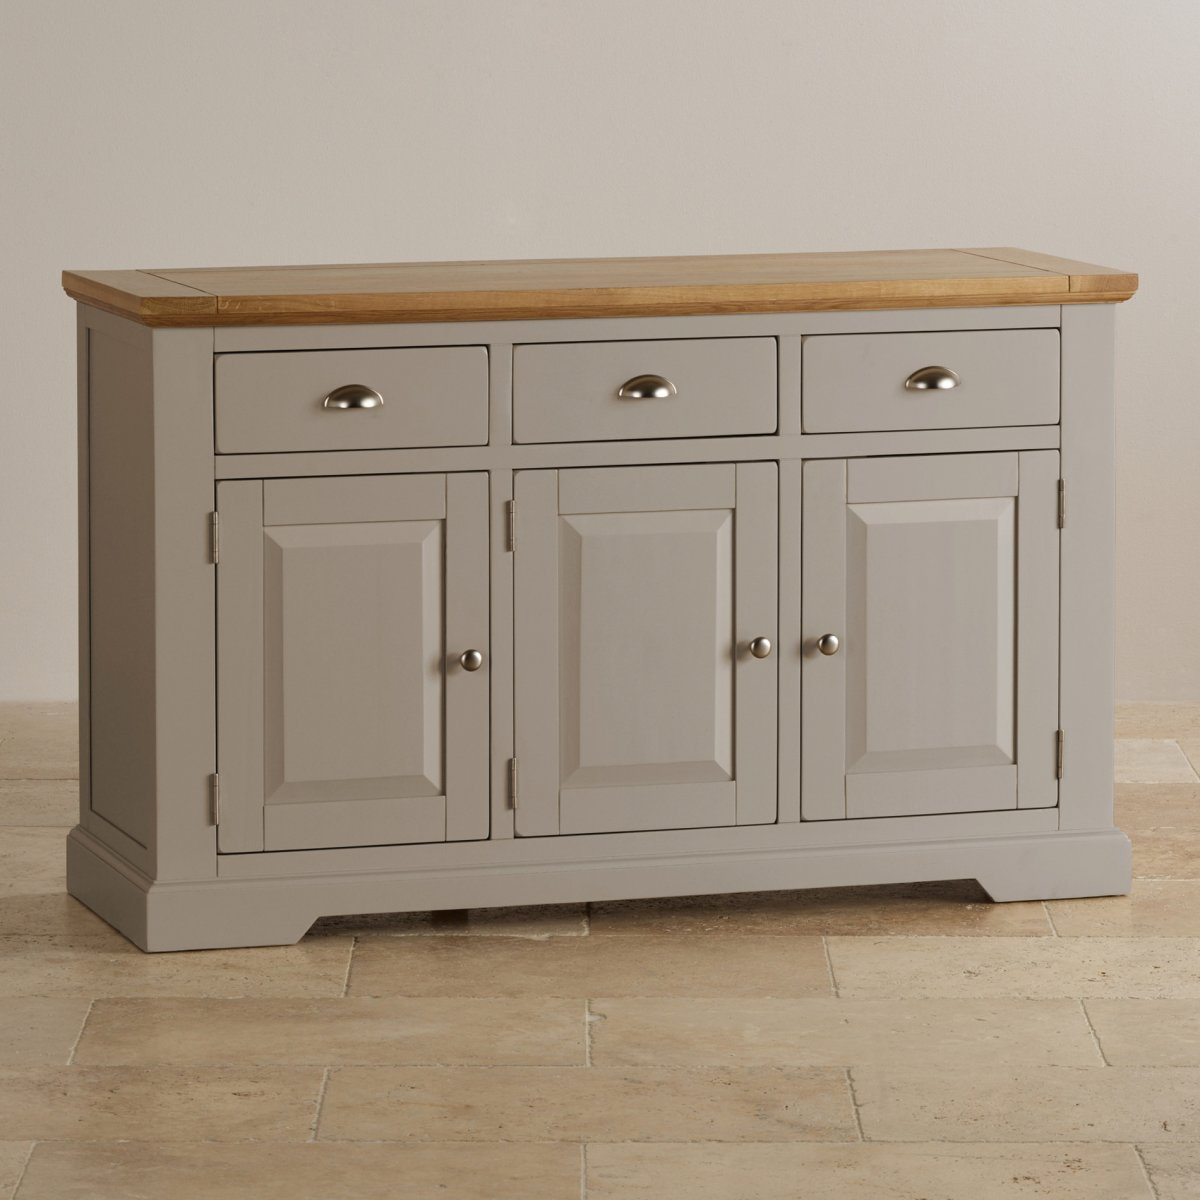 St Ives Natural Oak and Light Grey Painted Large Sideboard - Natural Oak And Light Grey Painted Large Sideboard.